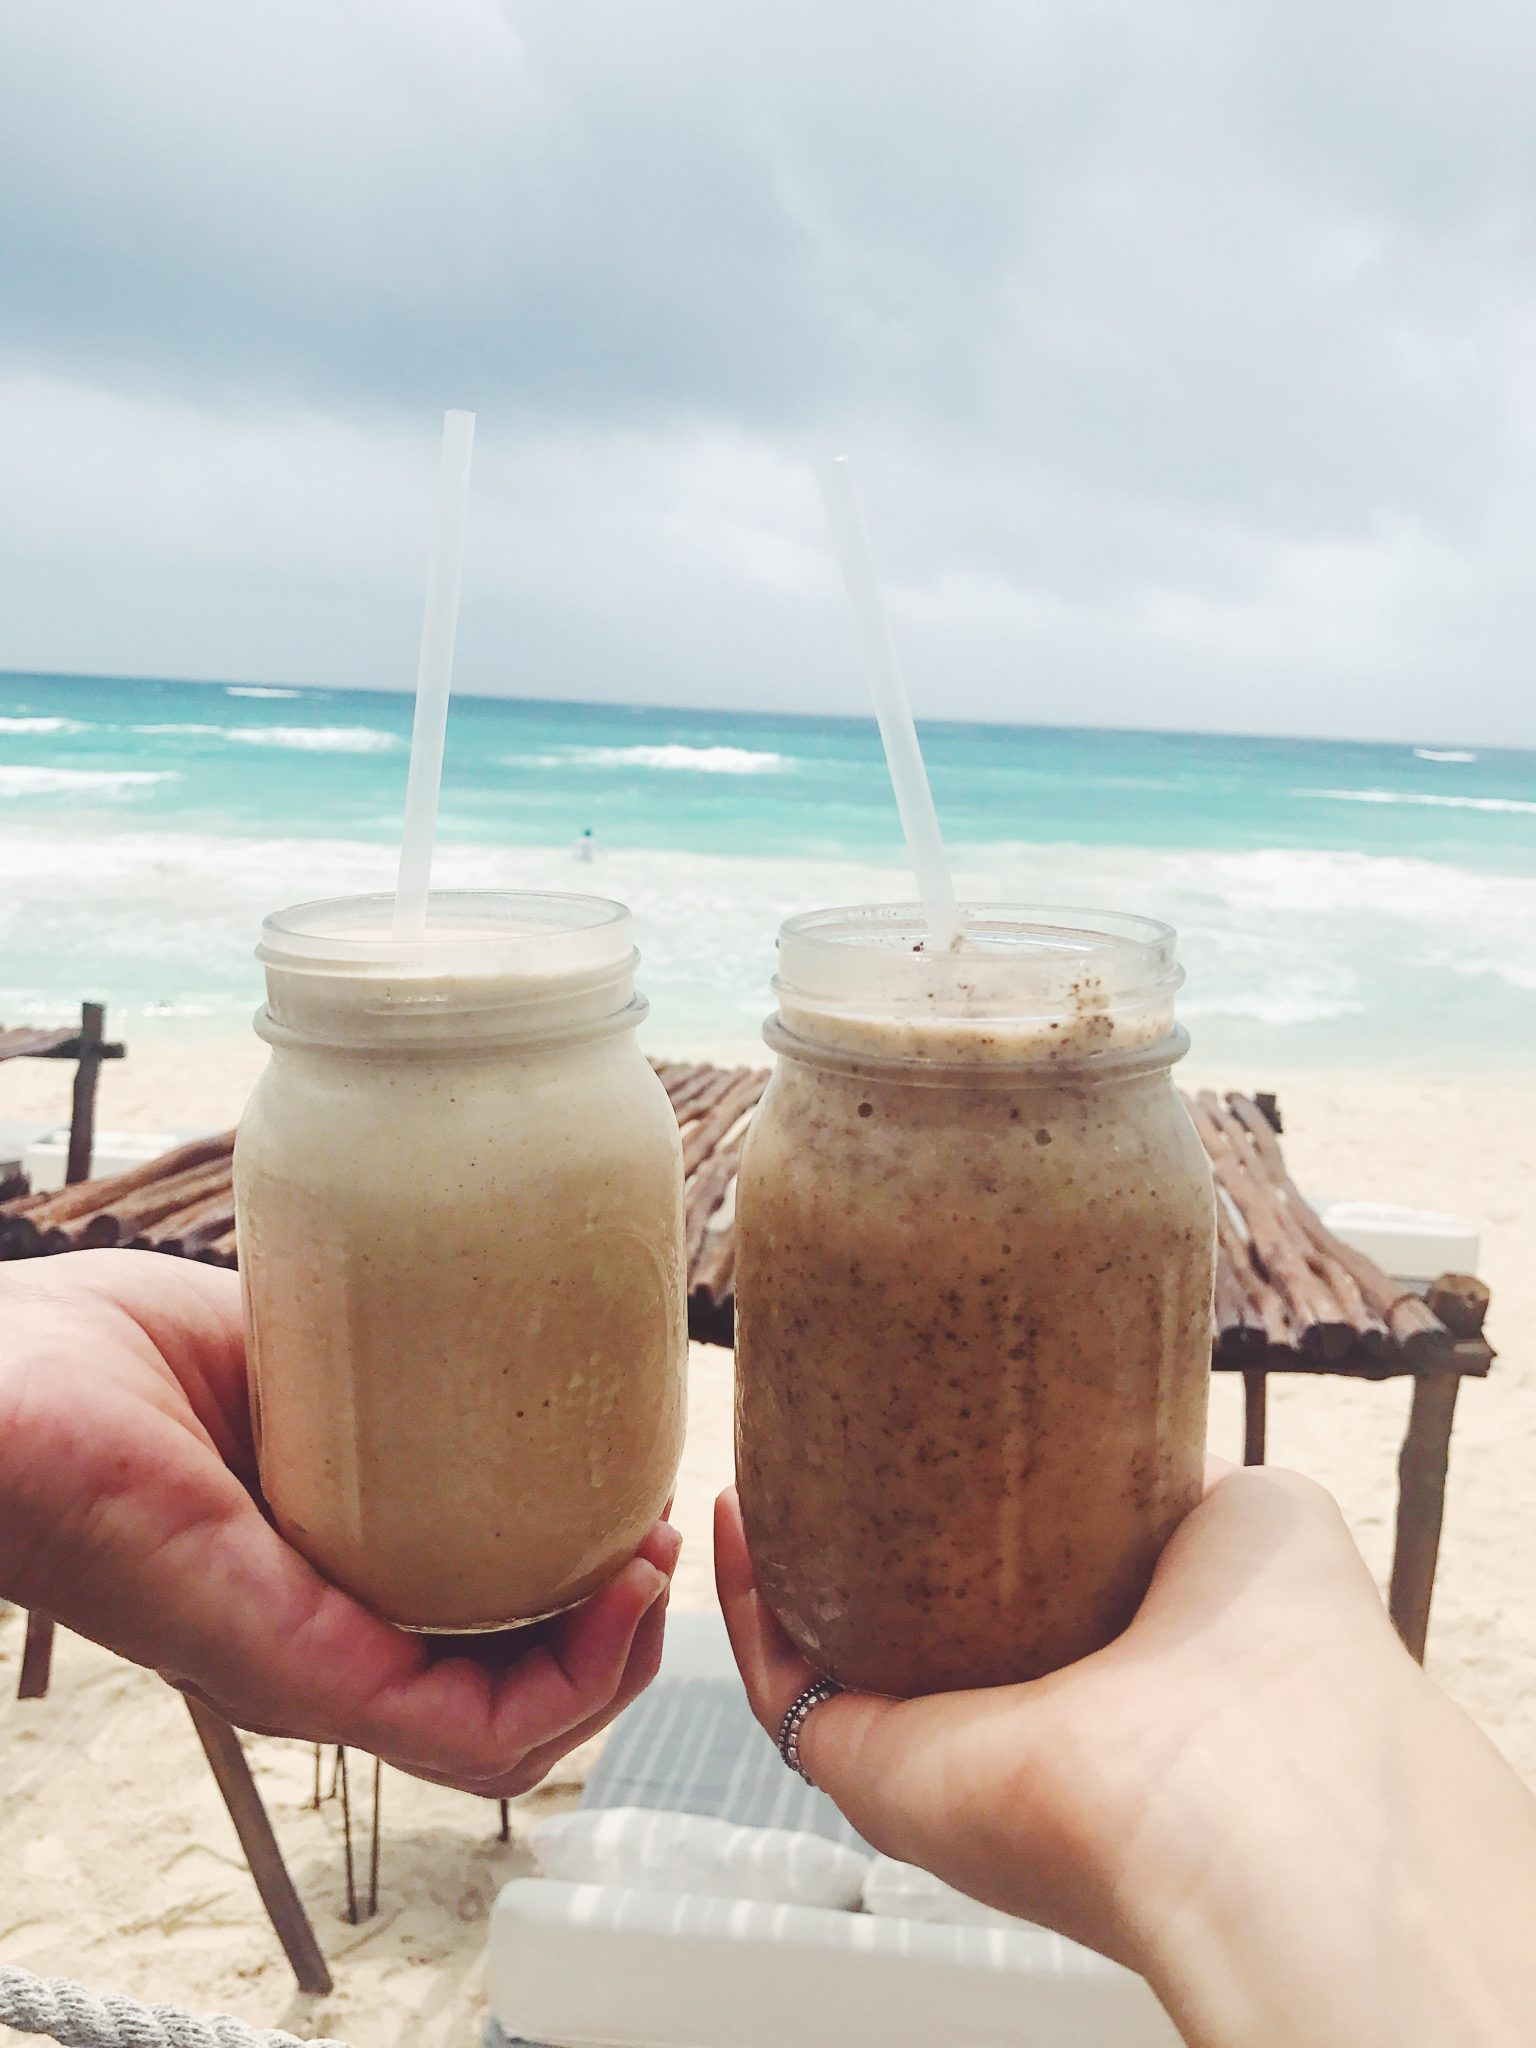 Thick shakes at The Real Coconut